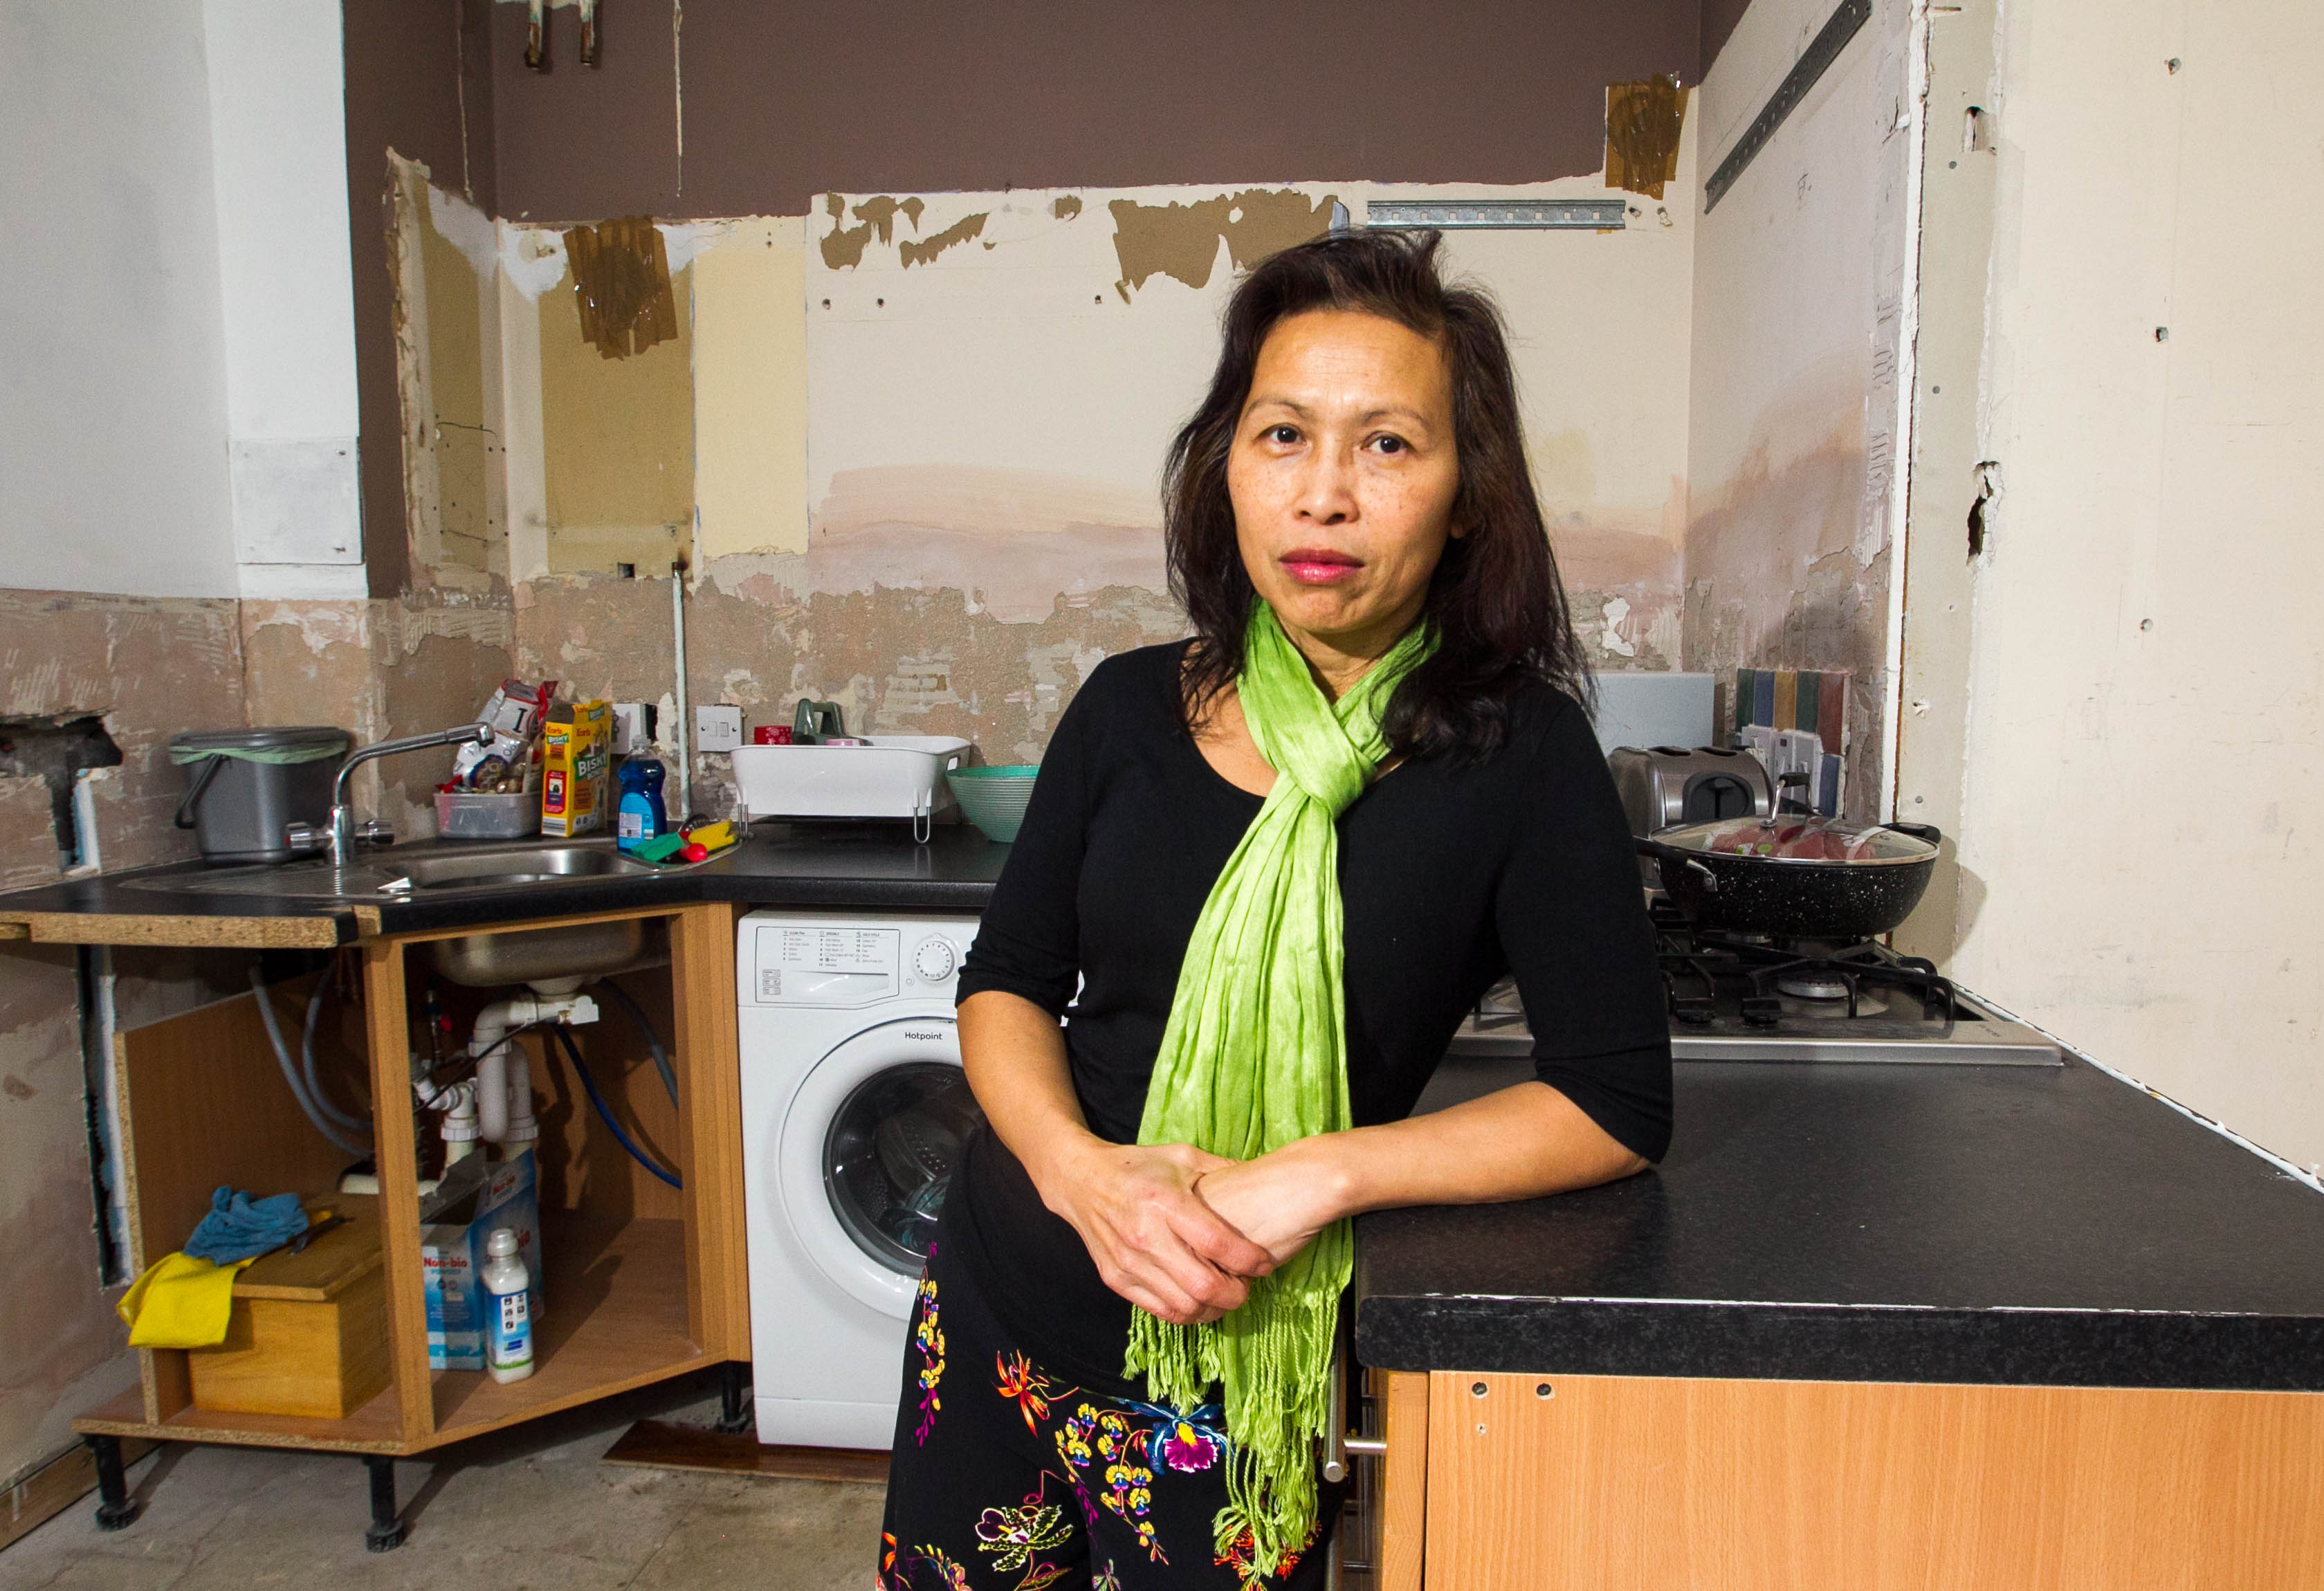 Sriwong Taylor has had her kitchen cancelled after it was half built. (Chris Austin)